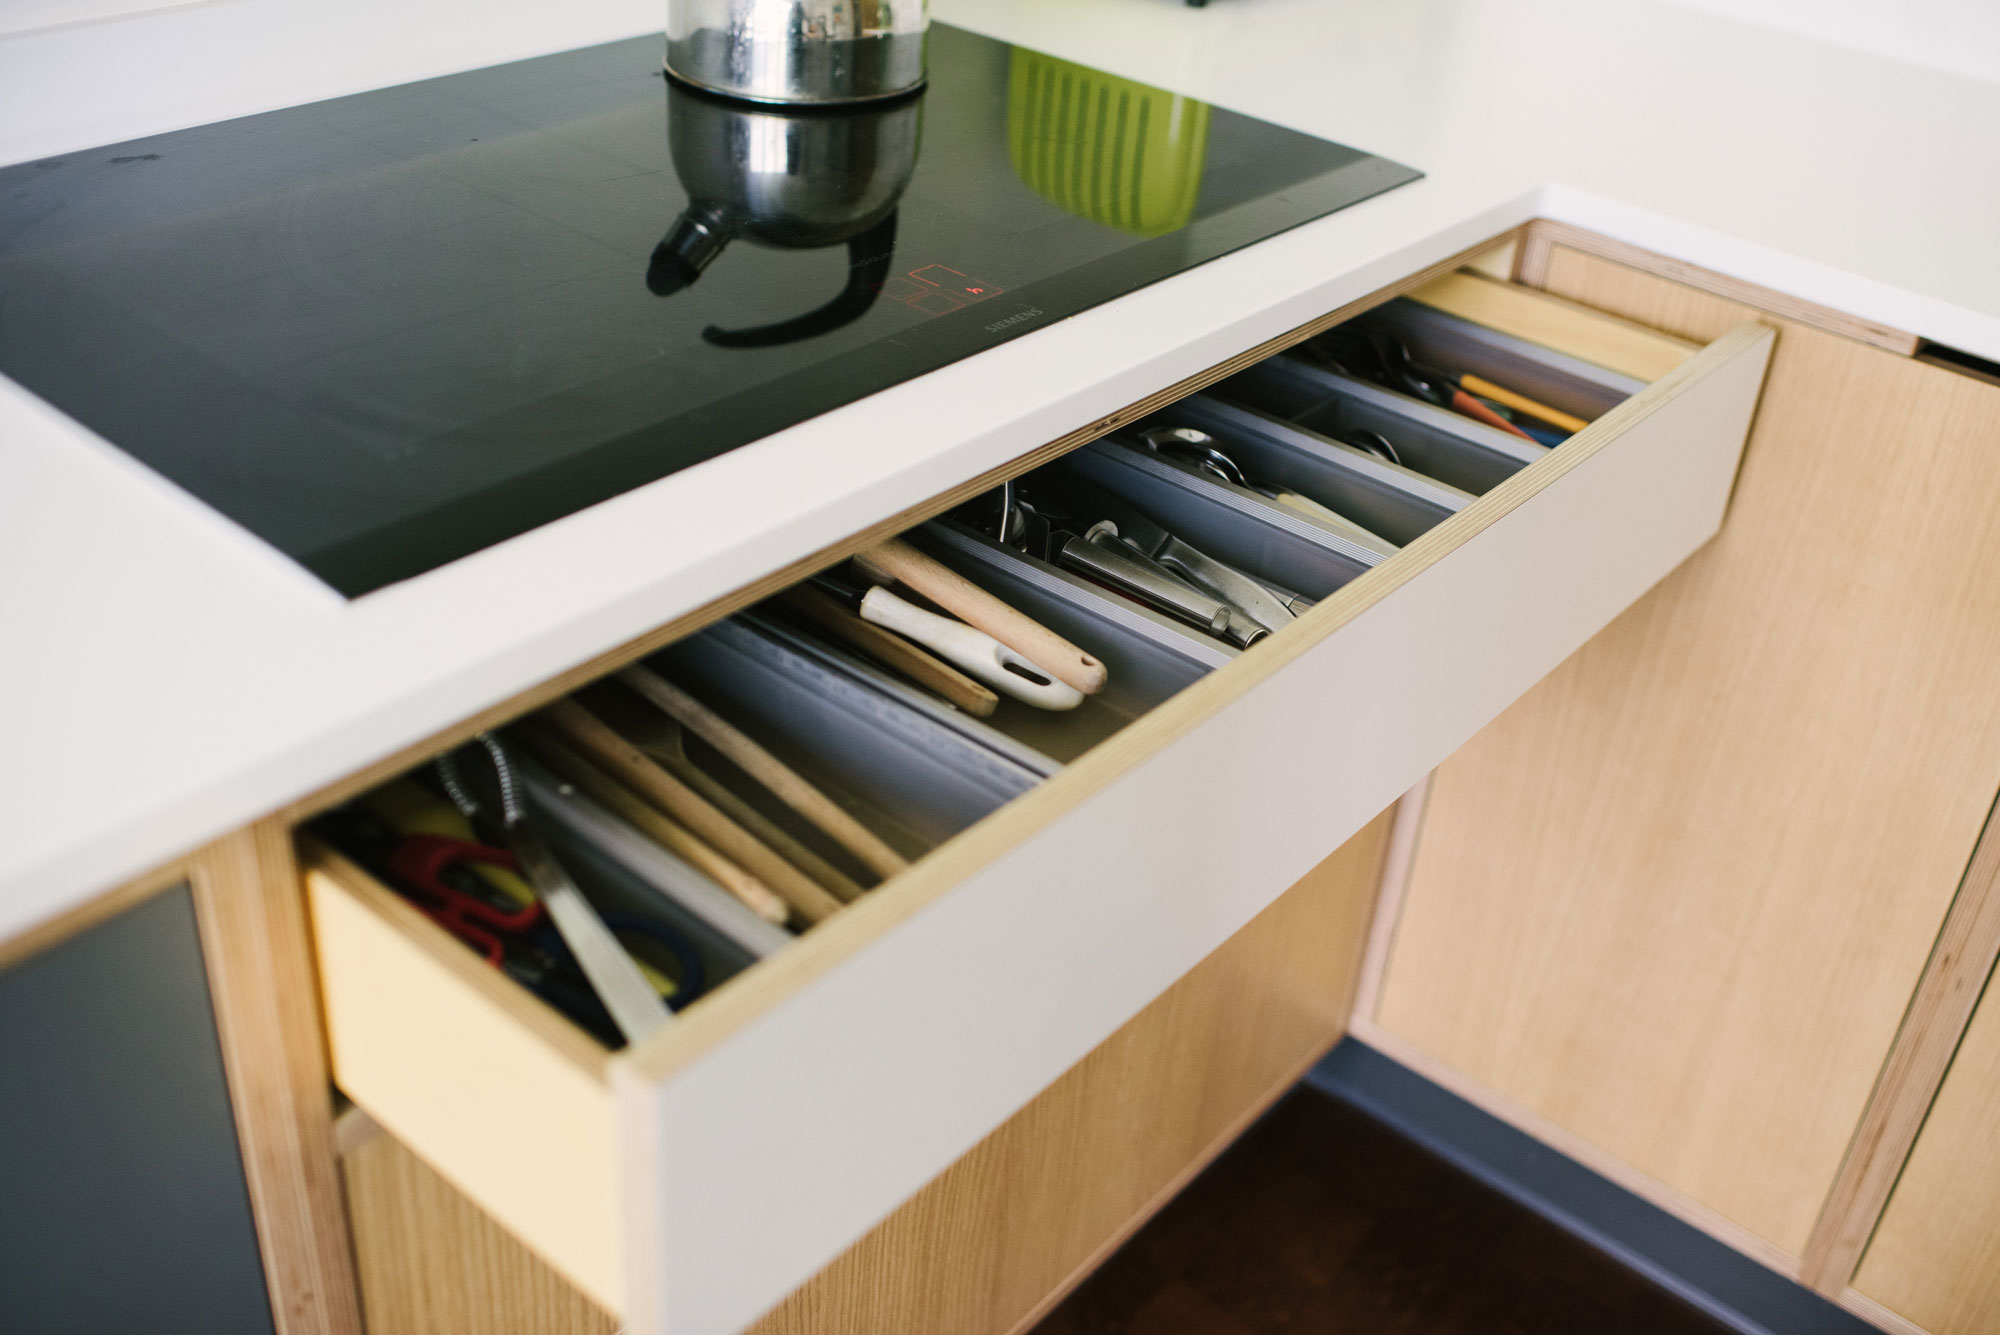 Plywood Cutlery Drawer